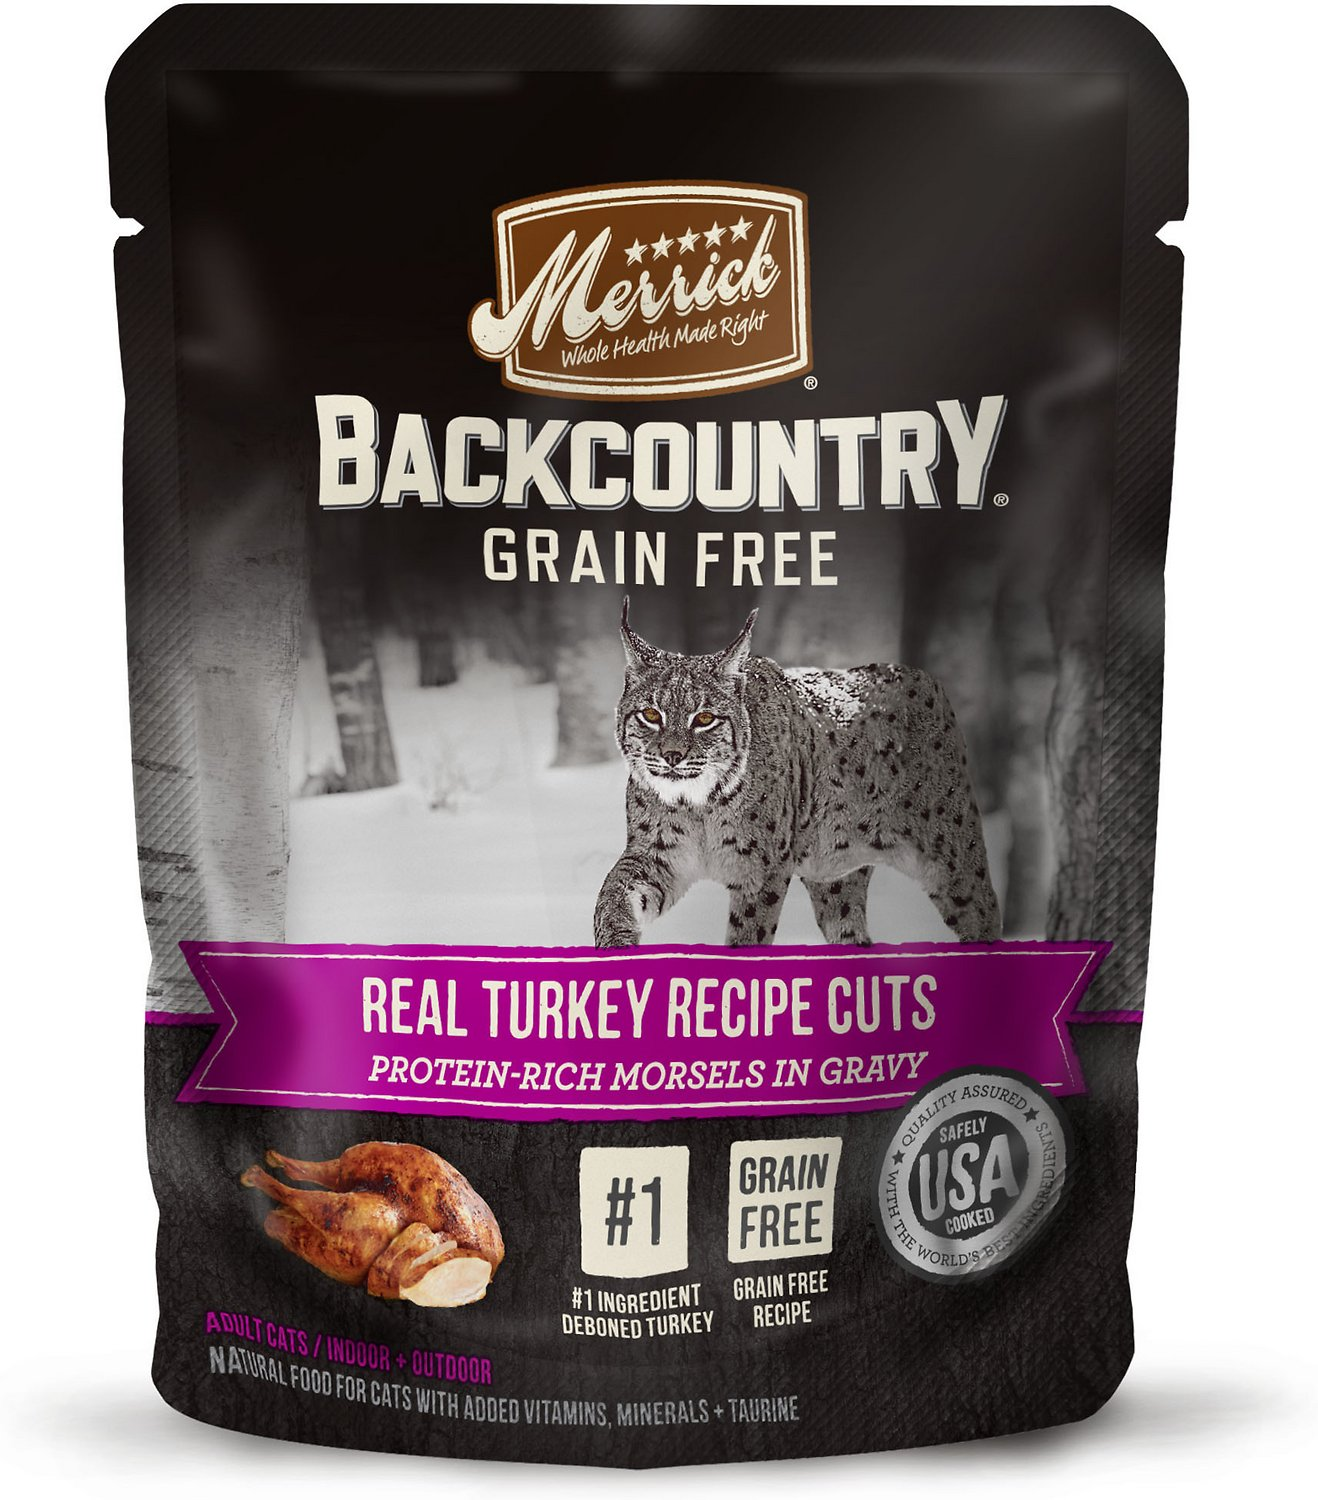 Merrick Backcountry Grain-Free Morsels in Gravy Real Turkey Recipe Cuts Cat Food Pouches, 3-oz